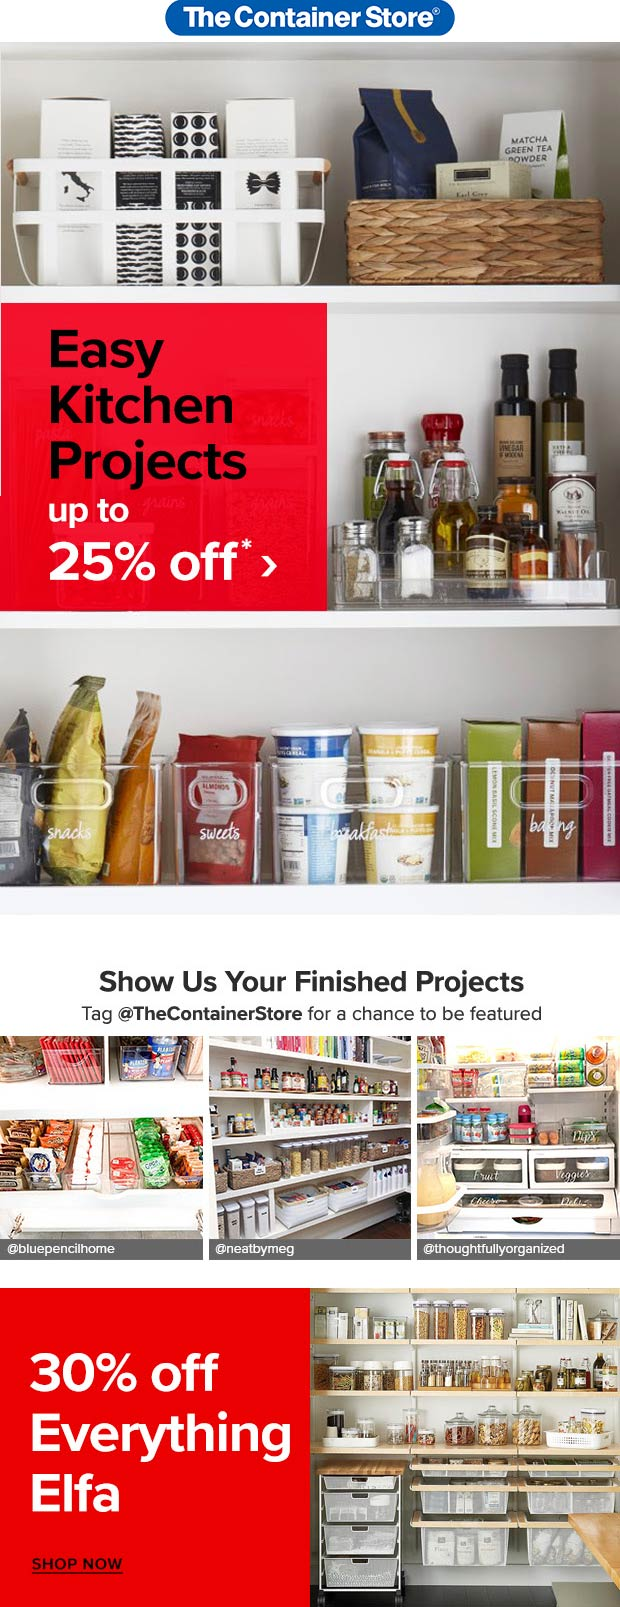 Container Store coupons & promo code for [June 2020]